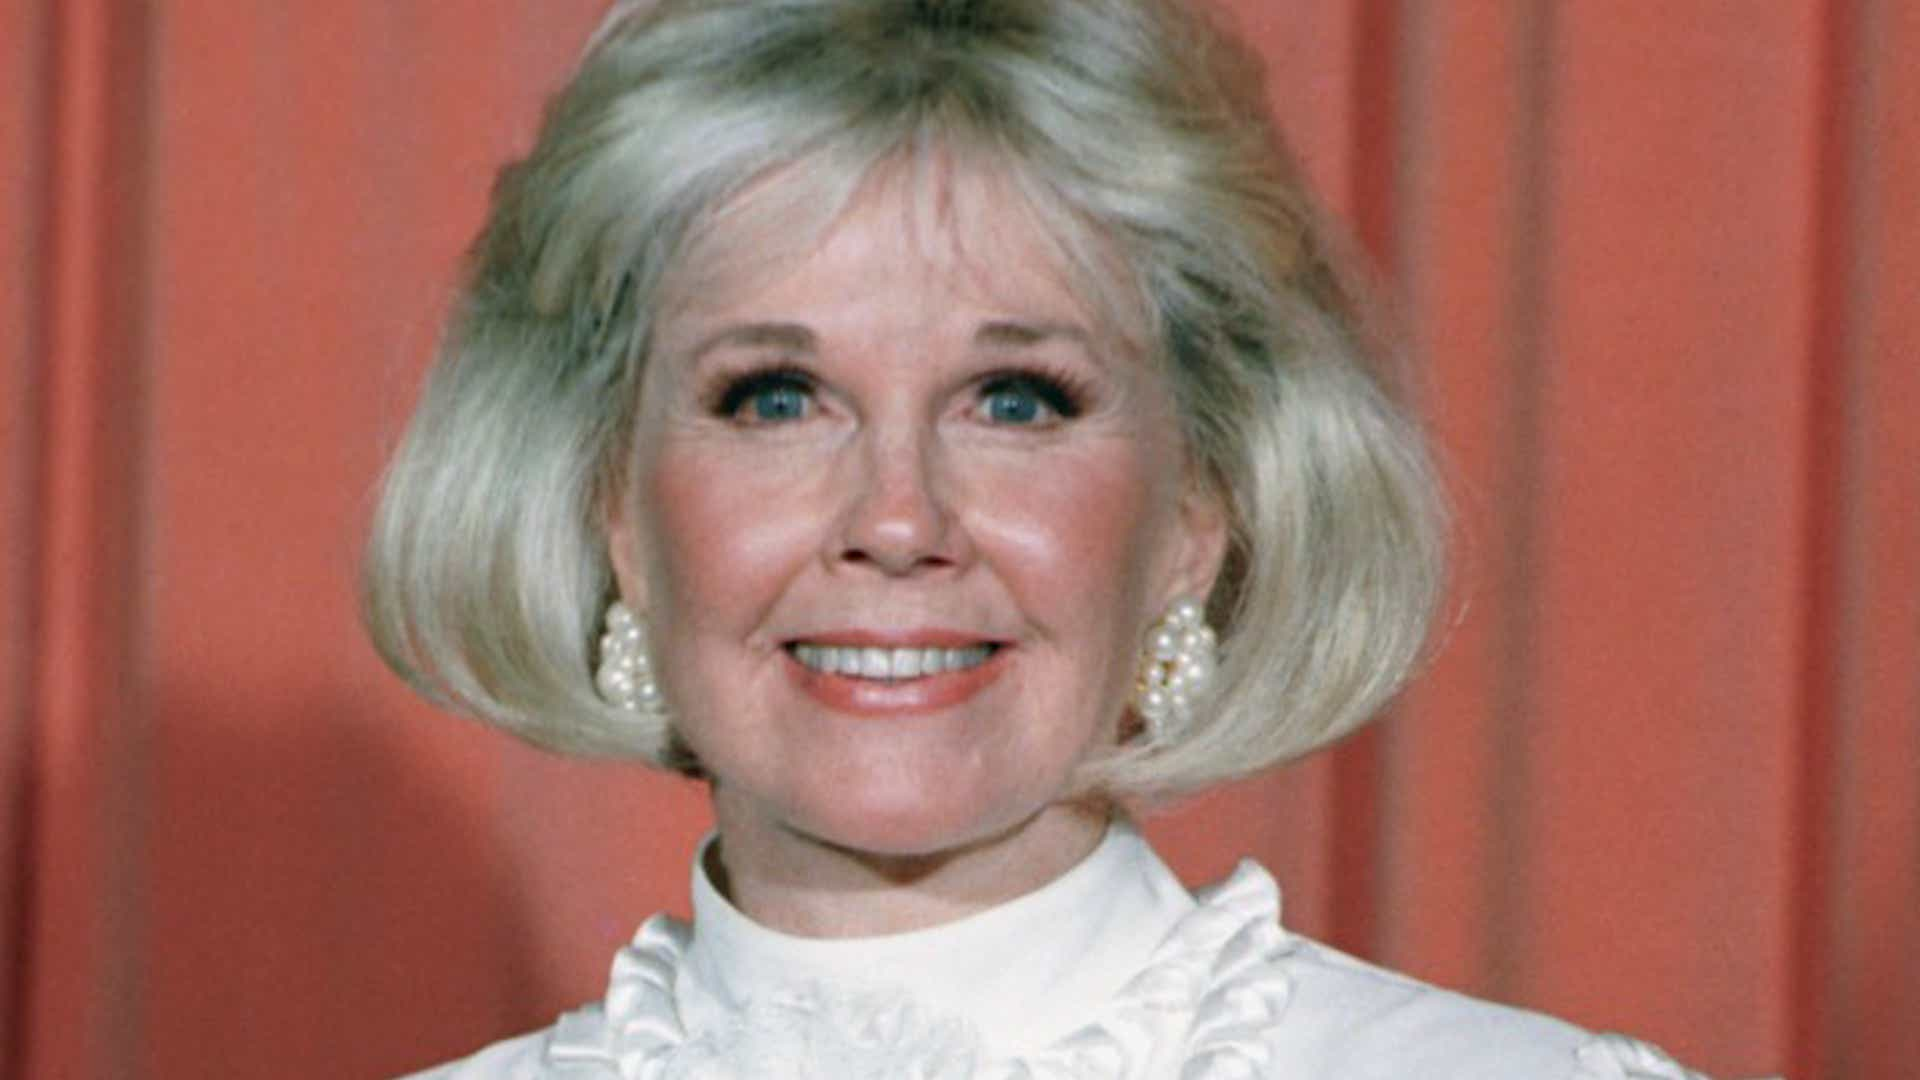 Andrea Porn Video Space Odyssey doris day dead at 97 after 'contracting a serious case of